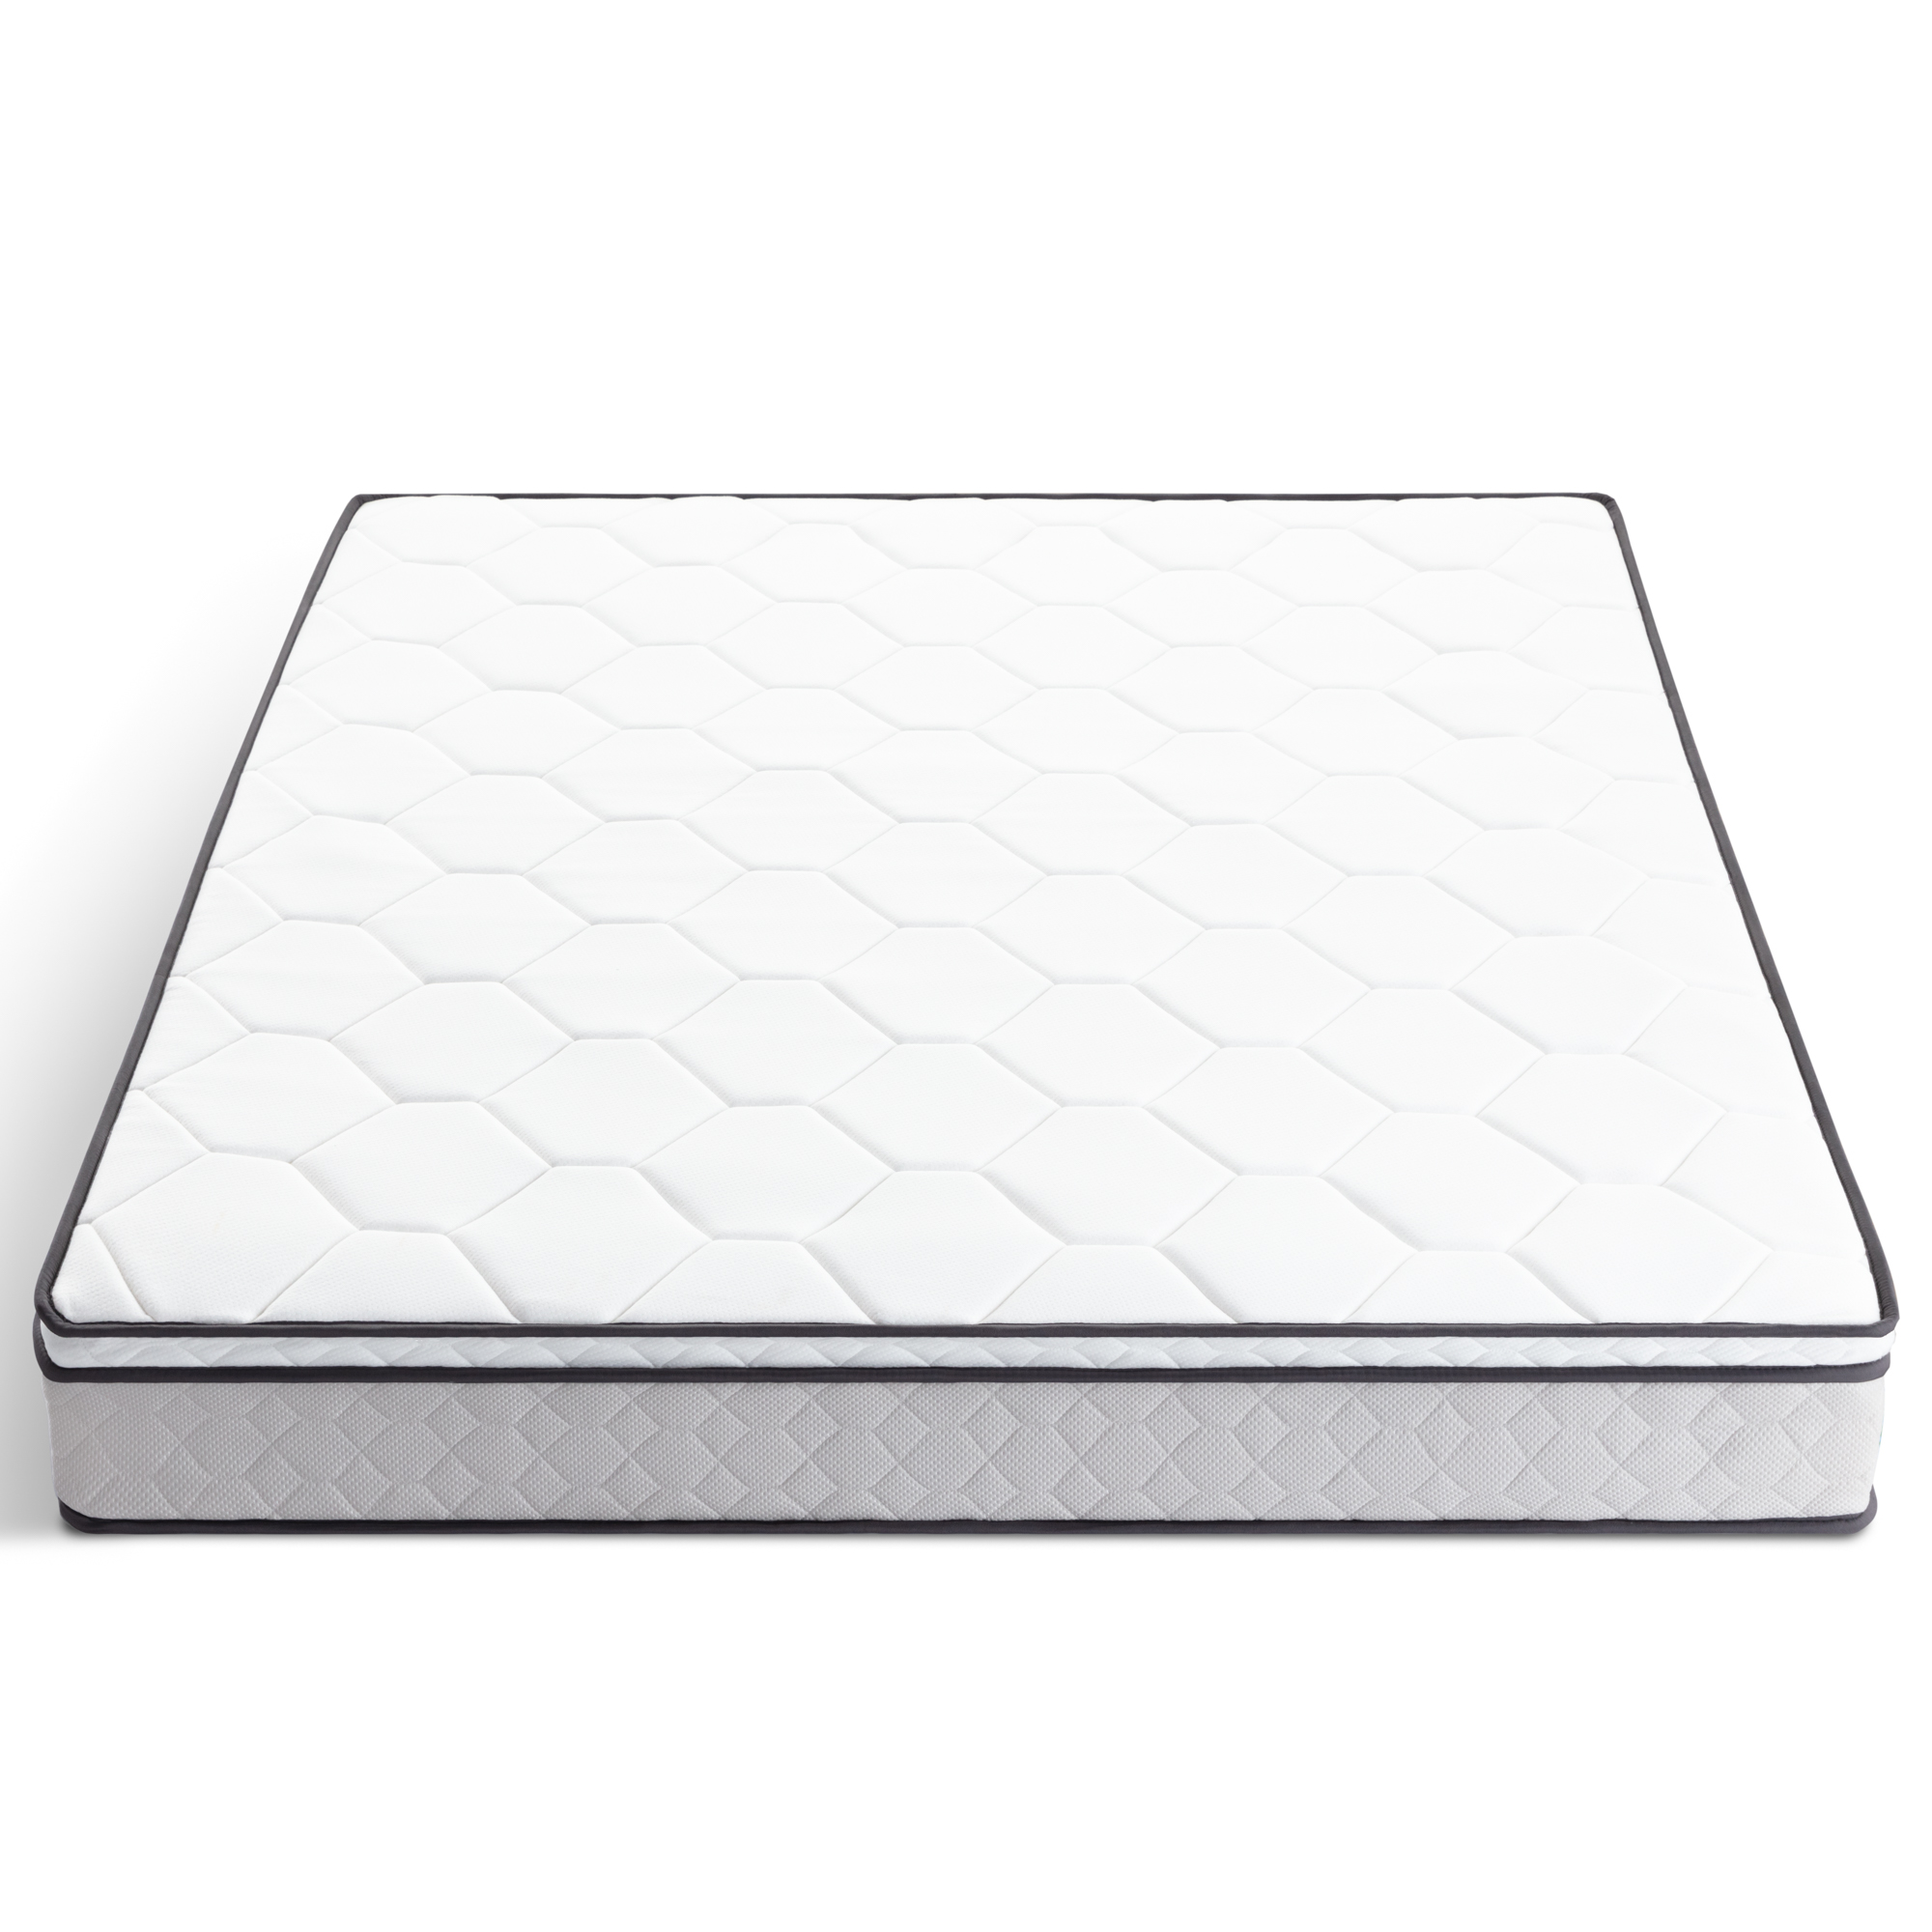 "Weekender 8"" Hyrbrid Plush Mattress"